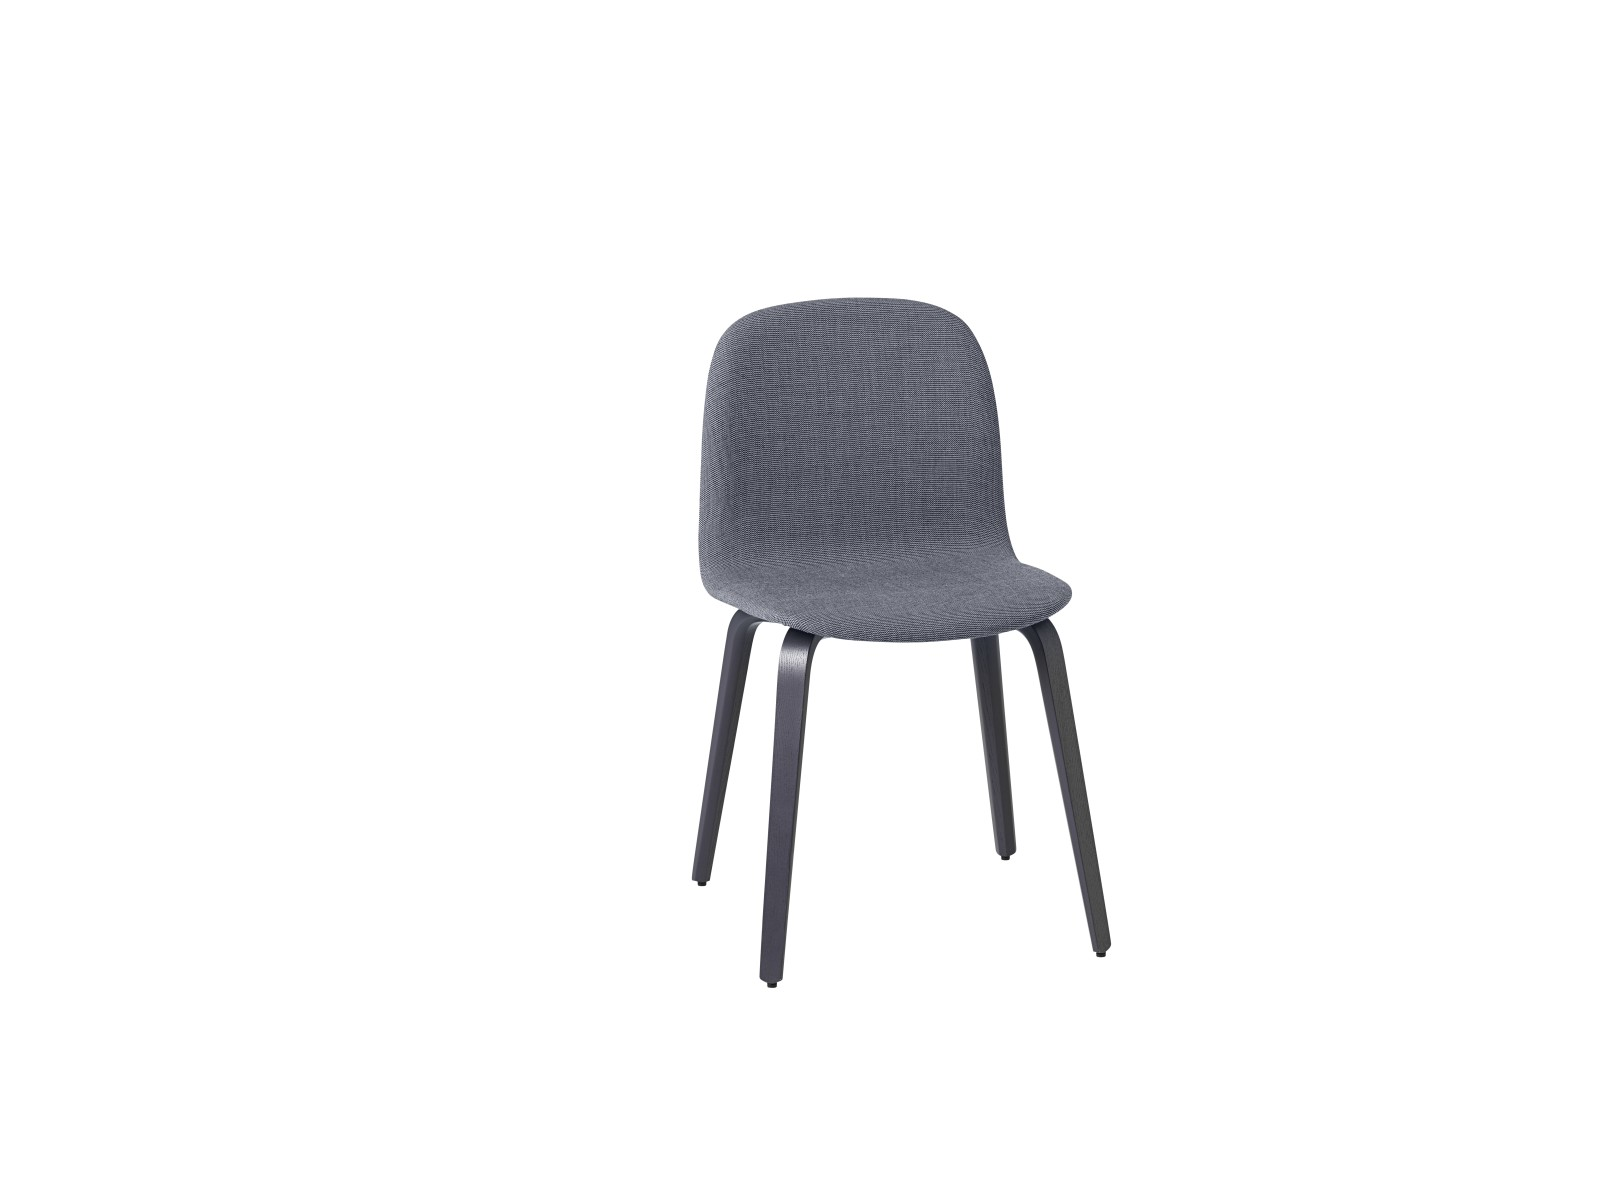 Visu Chair Wood Base - Textile Shell Umami 3 743 / Dark Blue